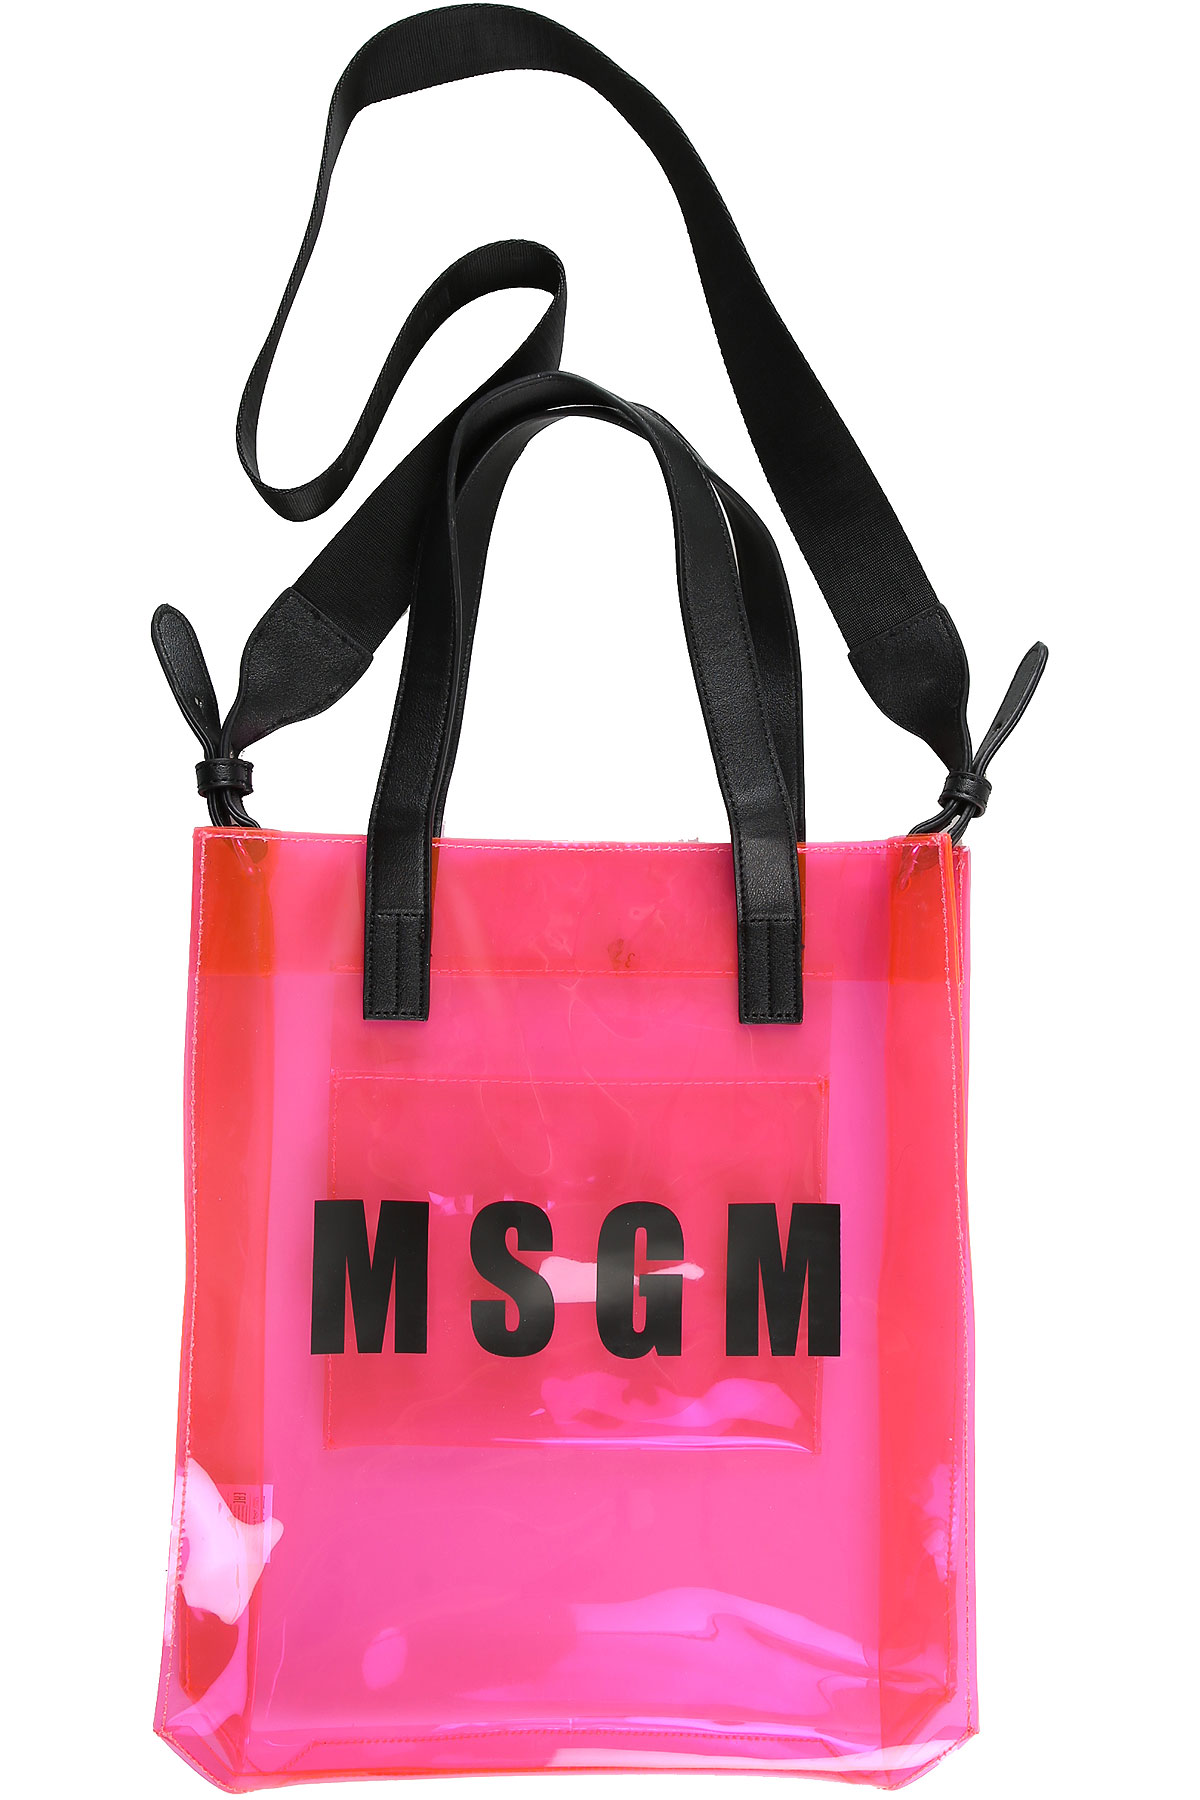 MSGM Accessories, Fluo Pink, PVC, 2017